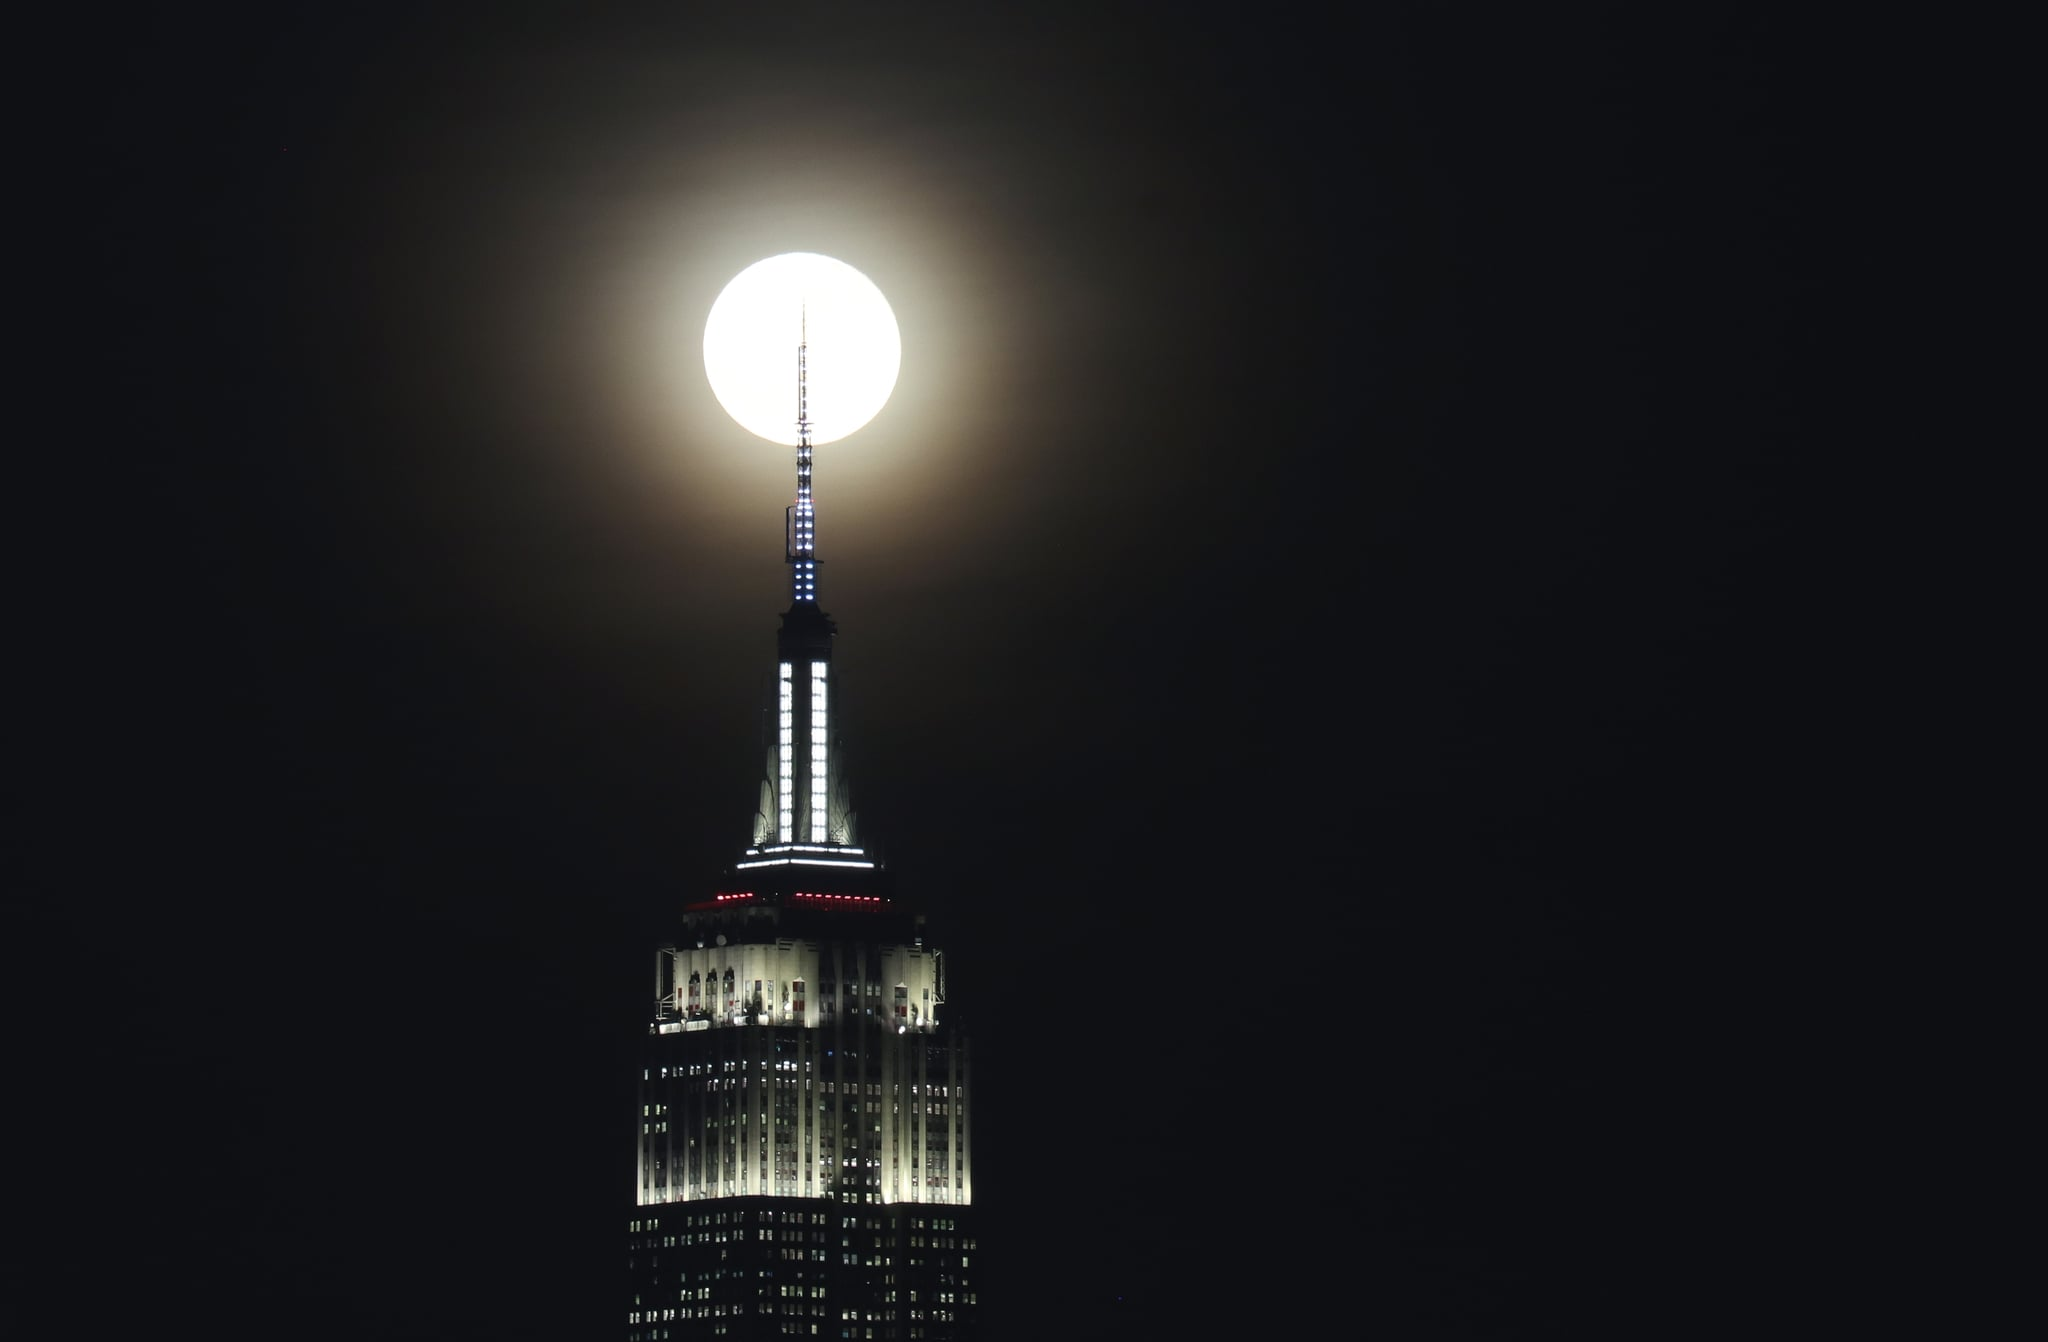 JERSEY CITY, NJ - DECEMBER 12: The full Cold Moon rises behind the Empire State Building in New York City on December 12, 2019 as seen from Jersey City, New Jersey. (Photo by Gary Hershorn/Getty Images)